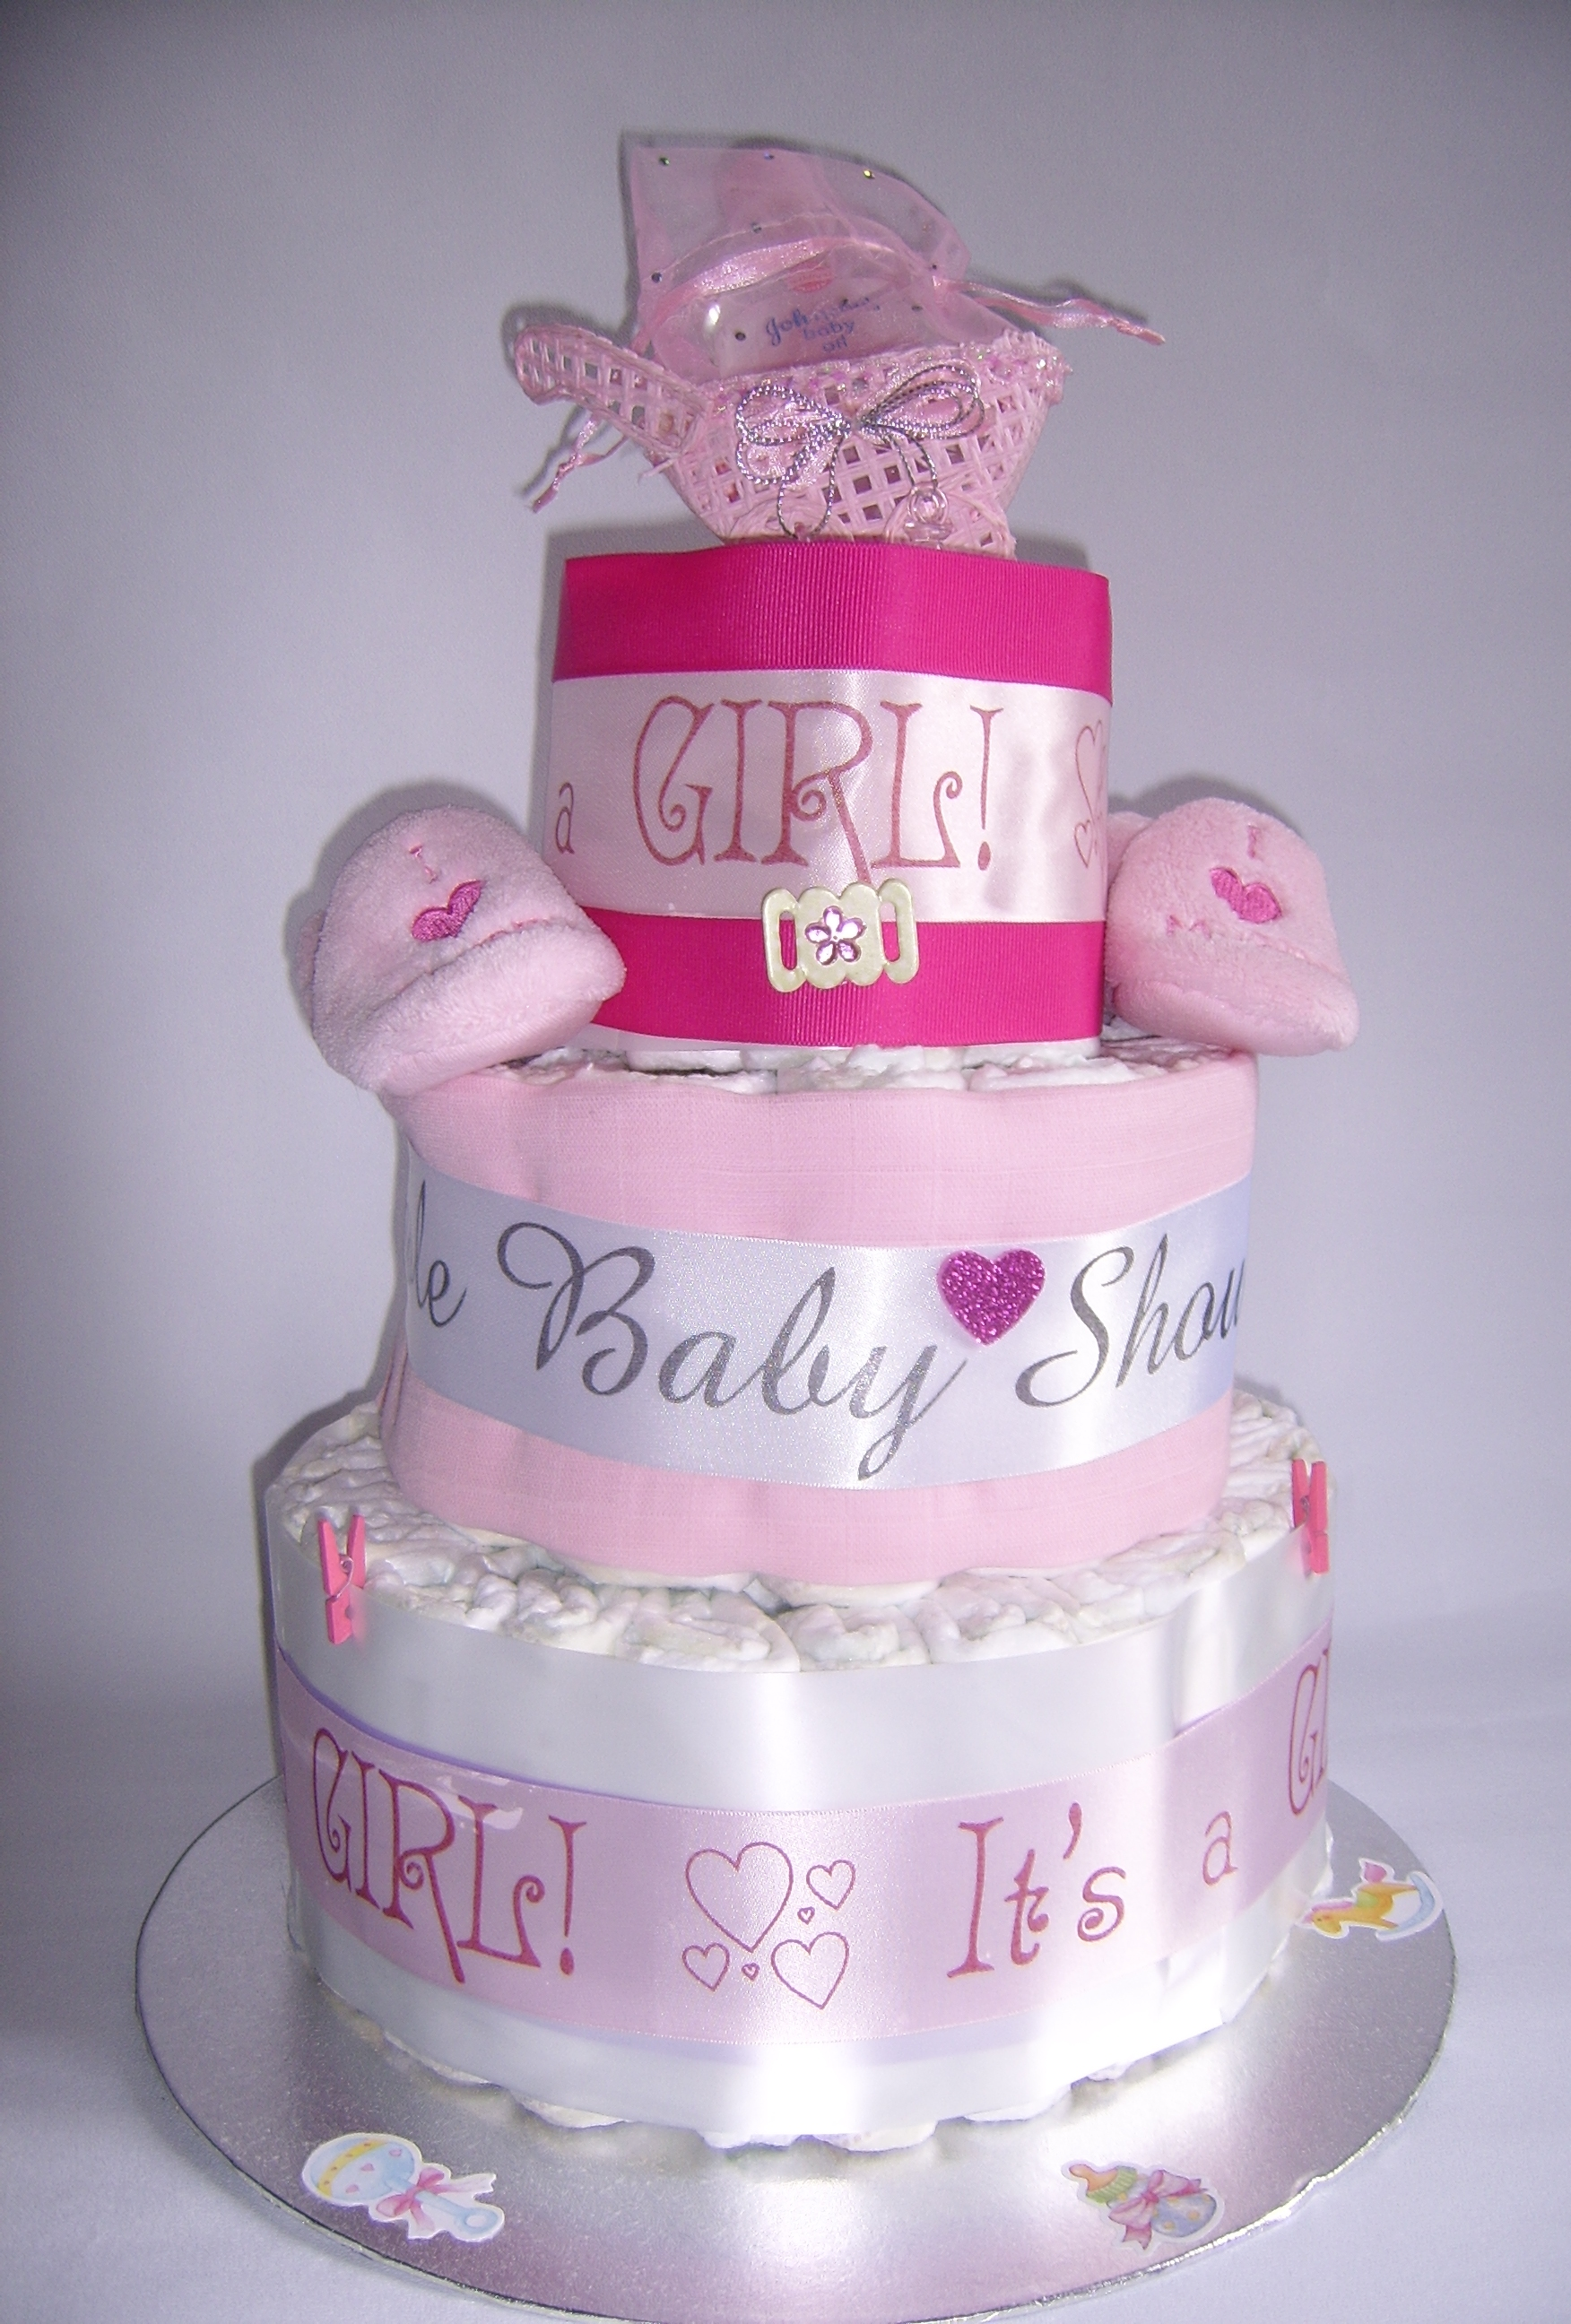 Description Memorable Baby Showers Girl nappy cake.JPG